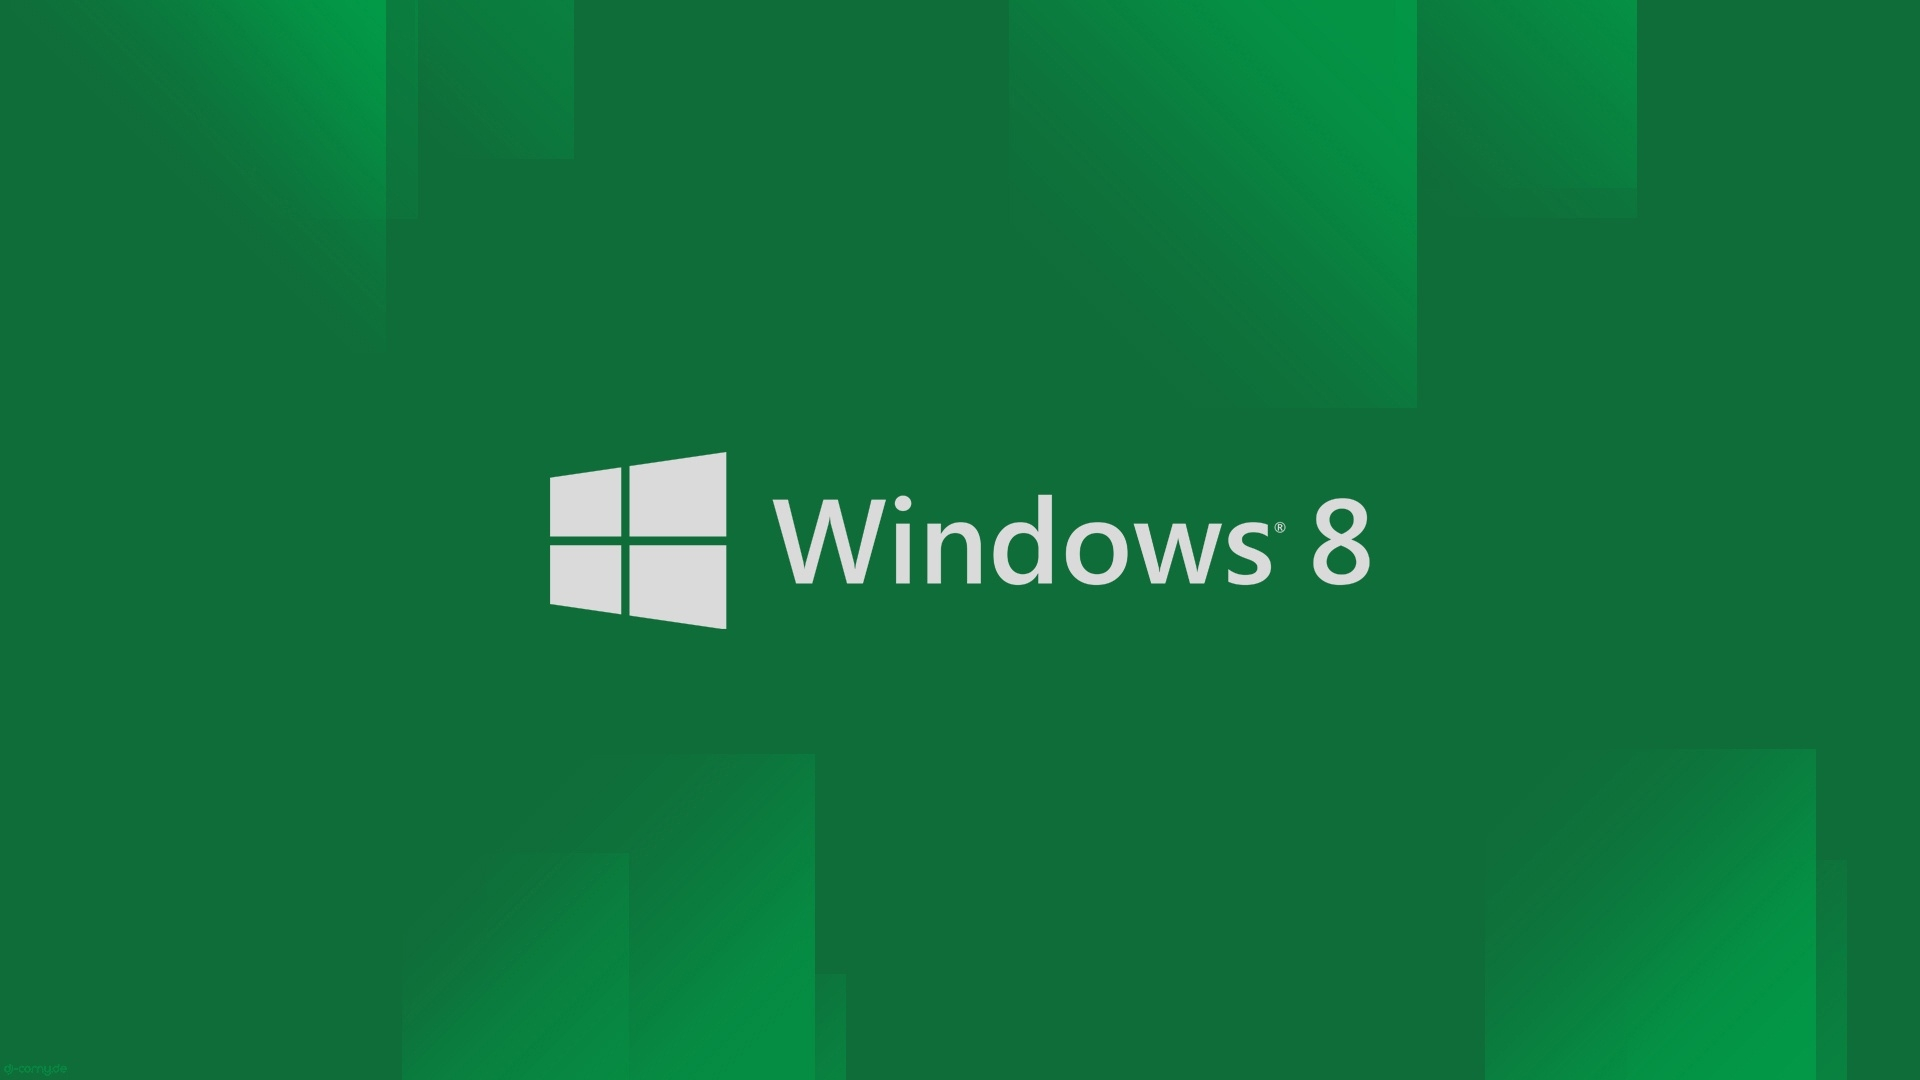 Windows 8 Widescreen Wallpapers Group (85+)